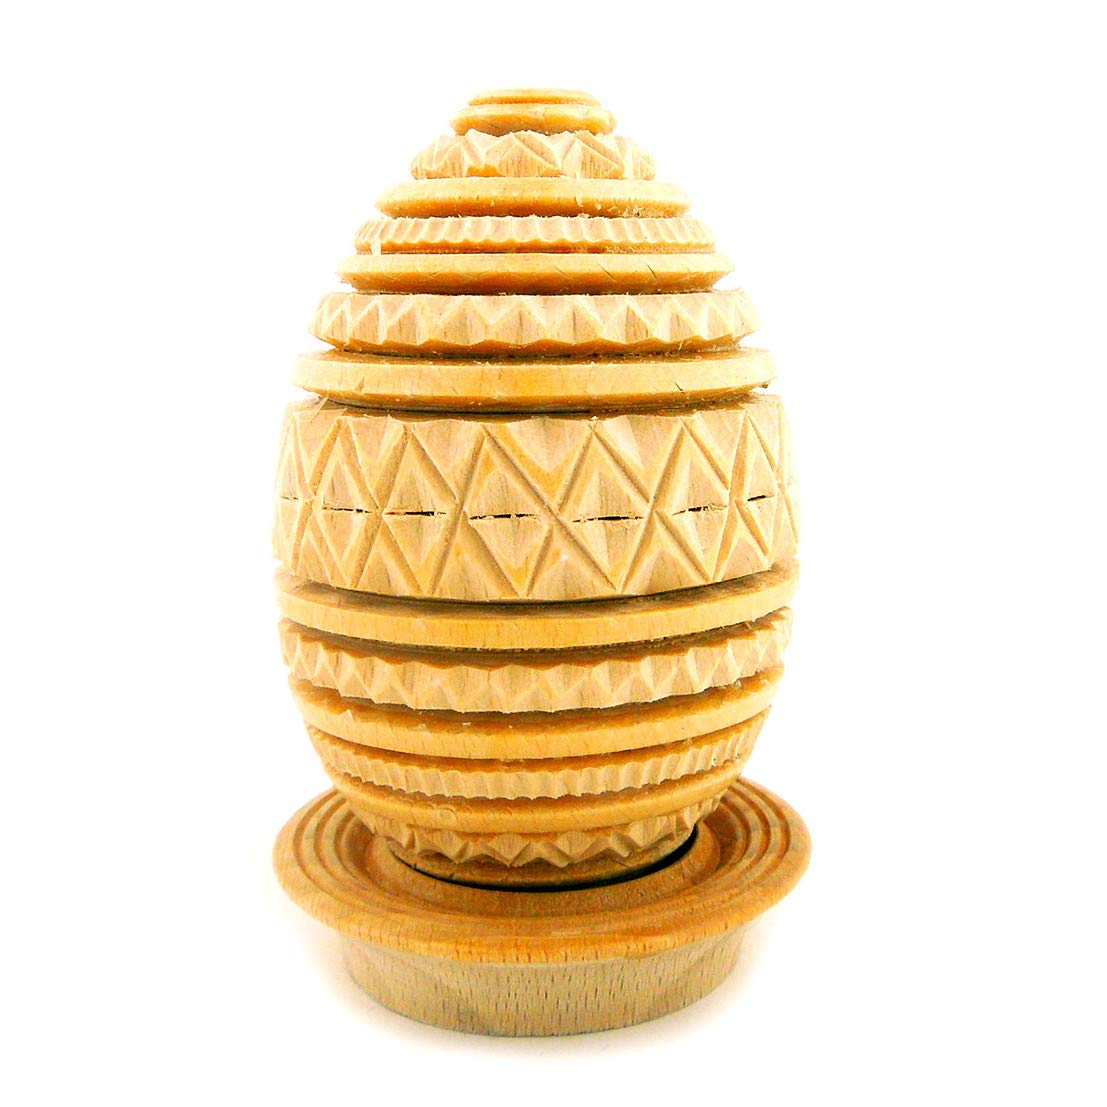 World Faith Carved Wood Egg Egg Hand Carved from Beach Wood with Its Holder - from Ukraine 3-1/2 Inch